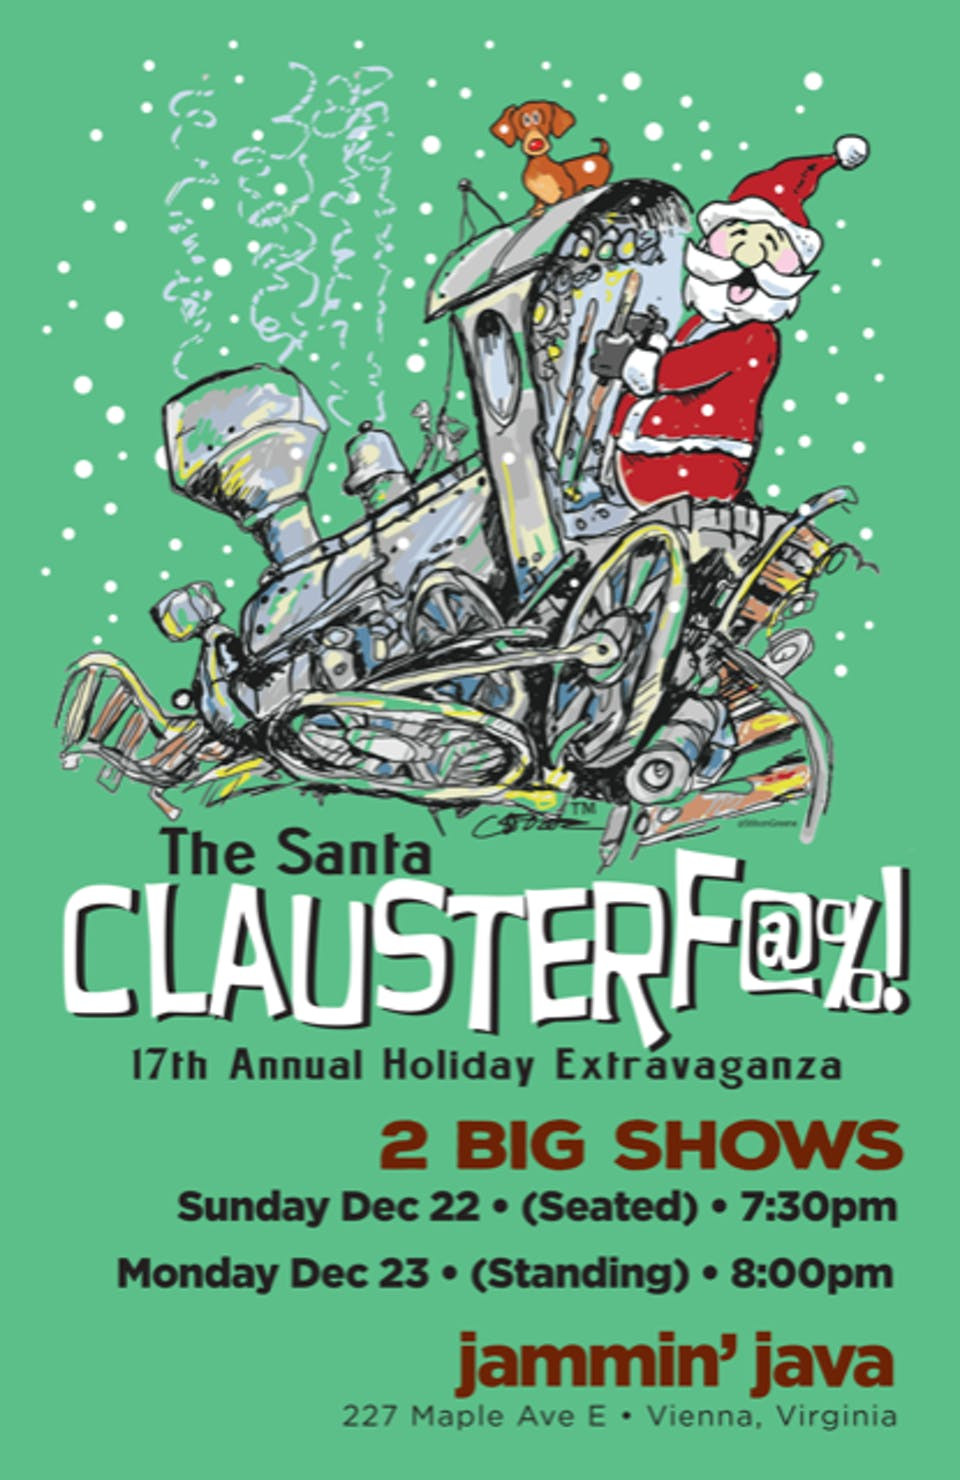 Todd Wright's 17th Annual Santa Clauster-f@%! Christmas Spectacular!